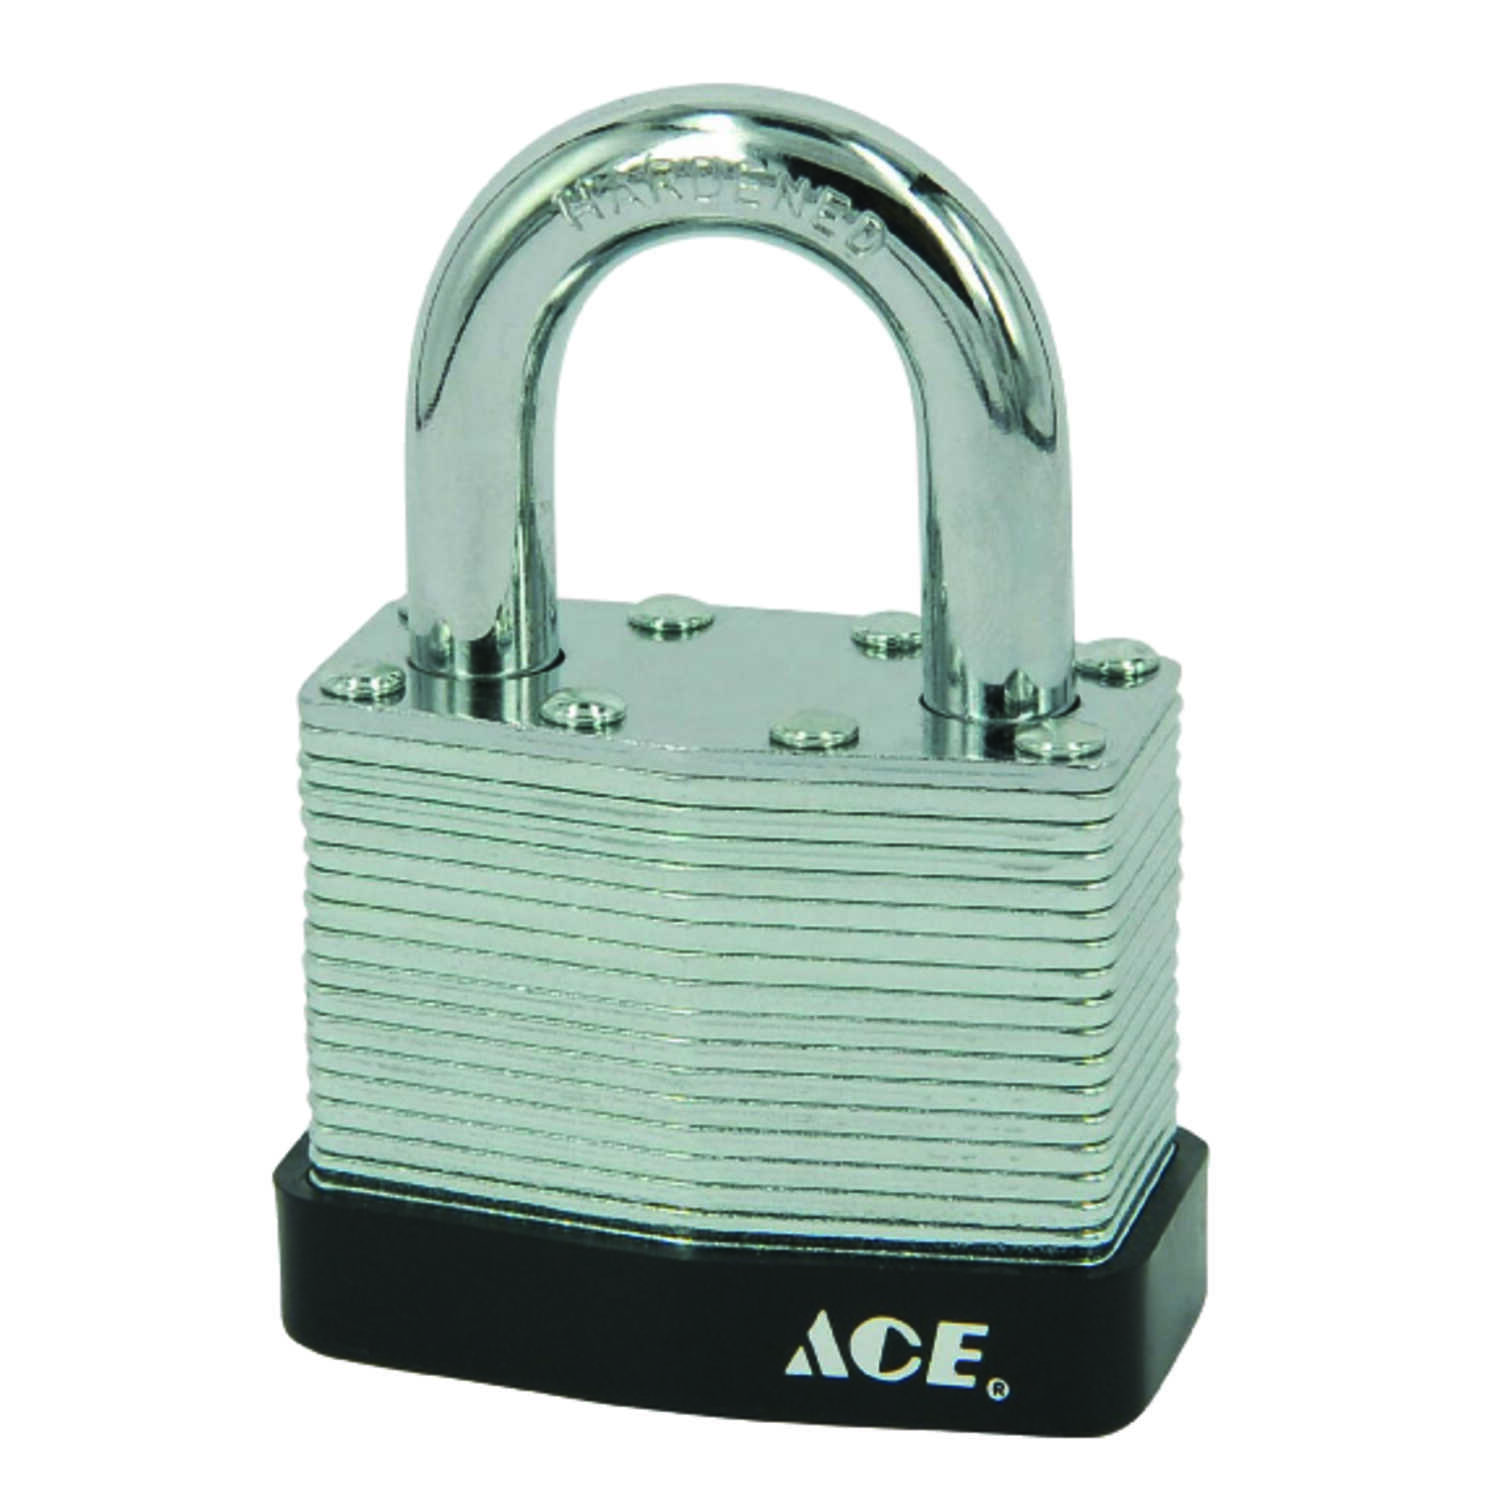 Ace  2 in. W x 1-1/2 in. H x 1-1/16 in. L Steel  Double Locking  Padlock  1 pk Keyed Alike